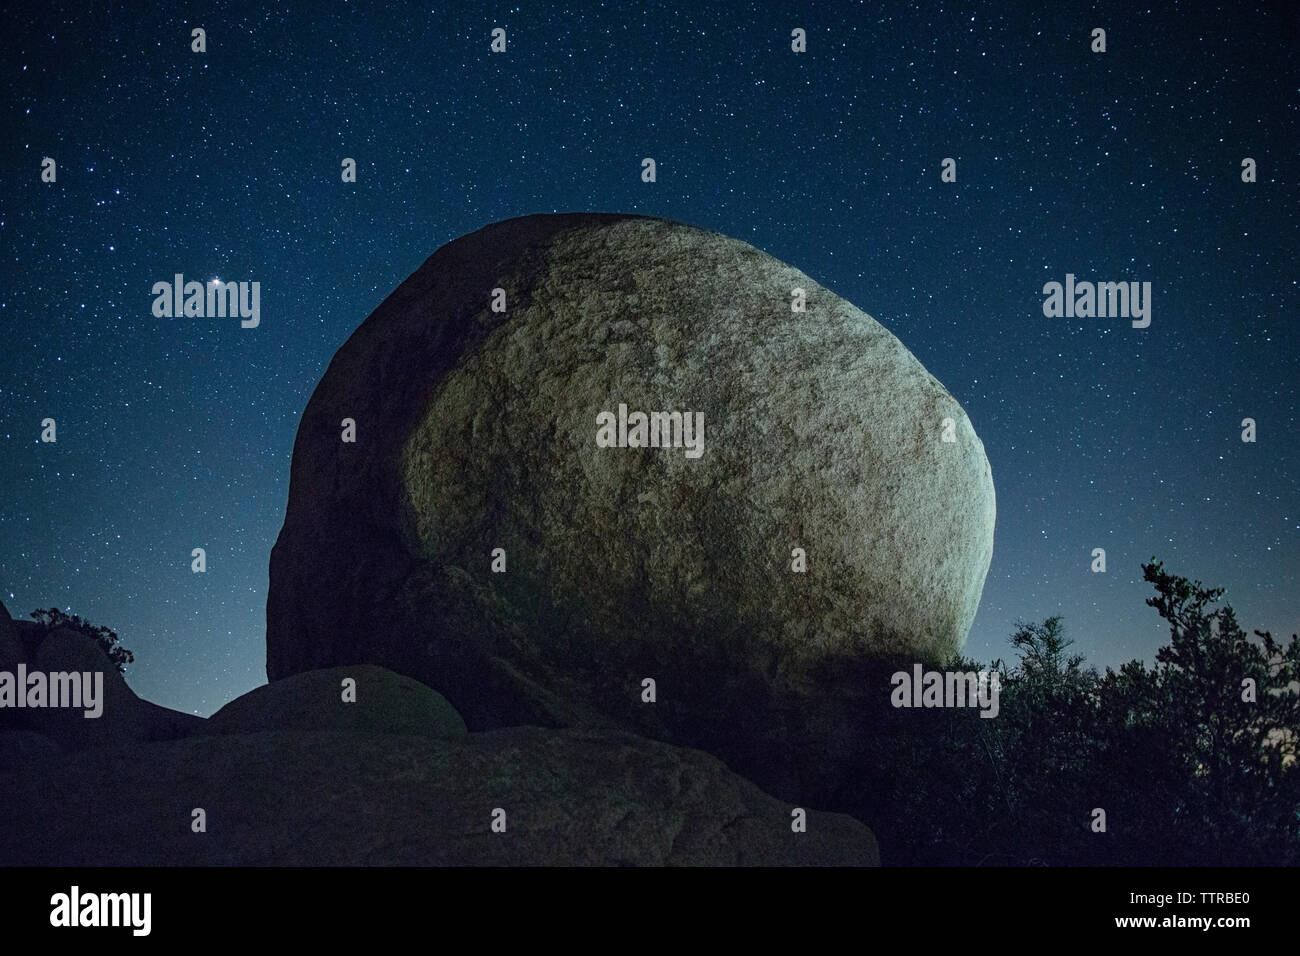 Rock against star field at night Stock Photo